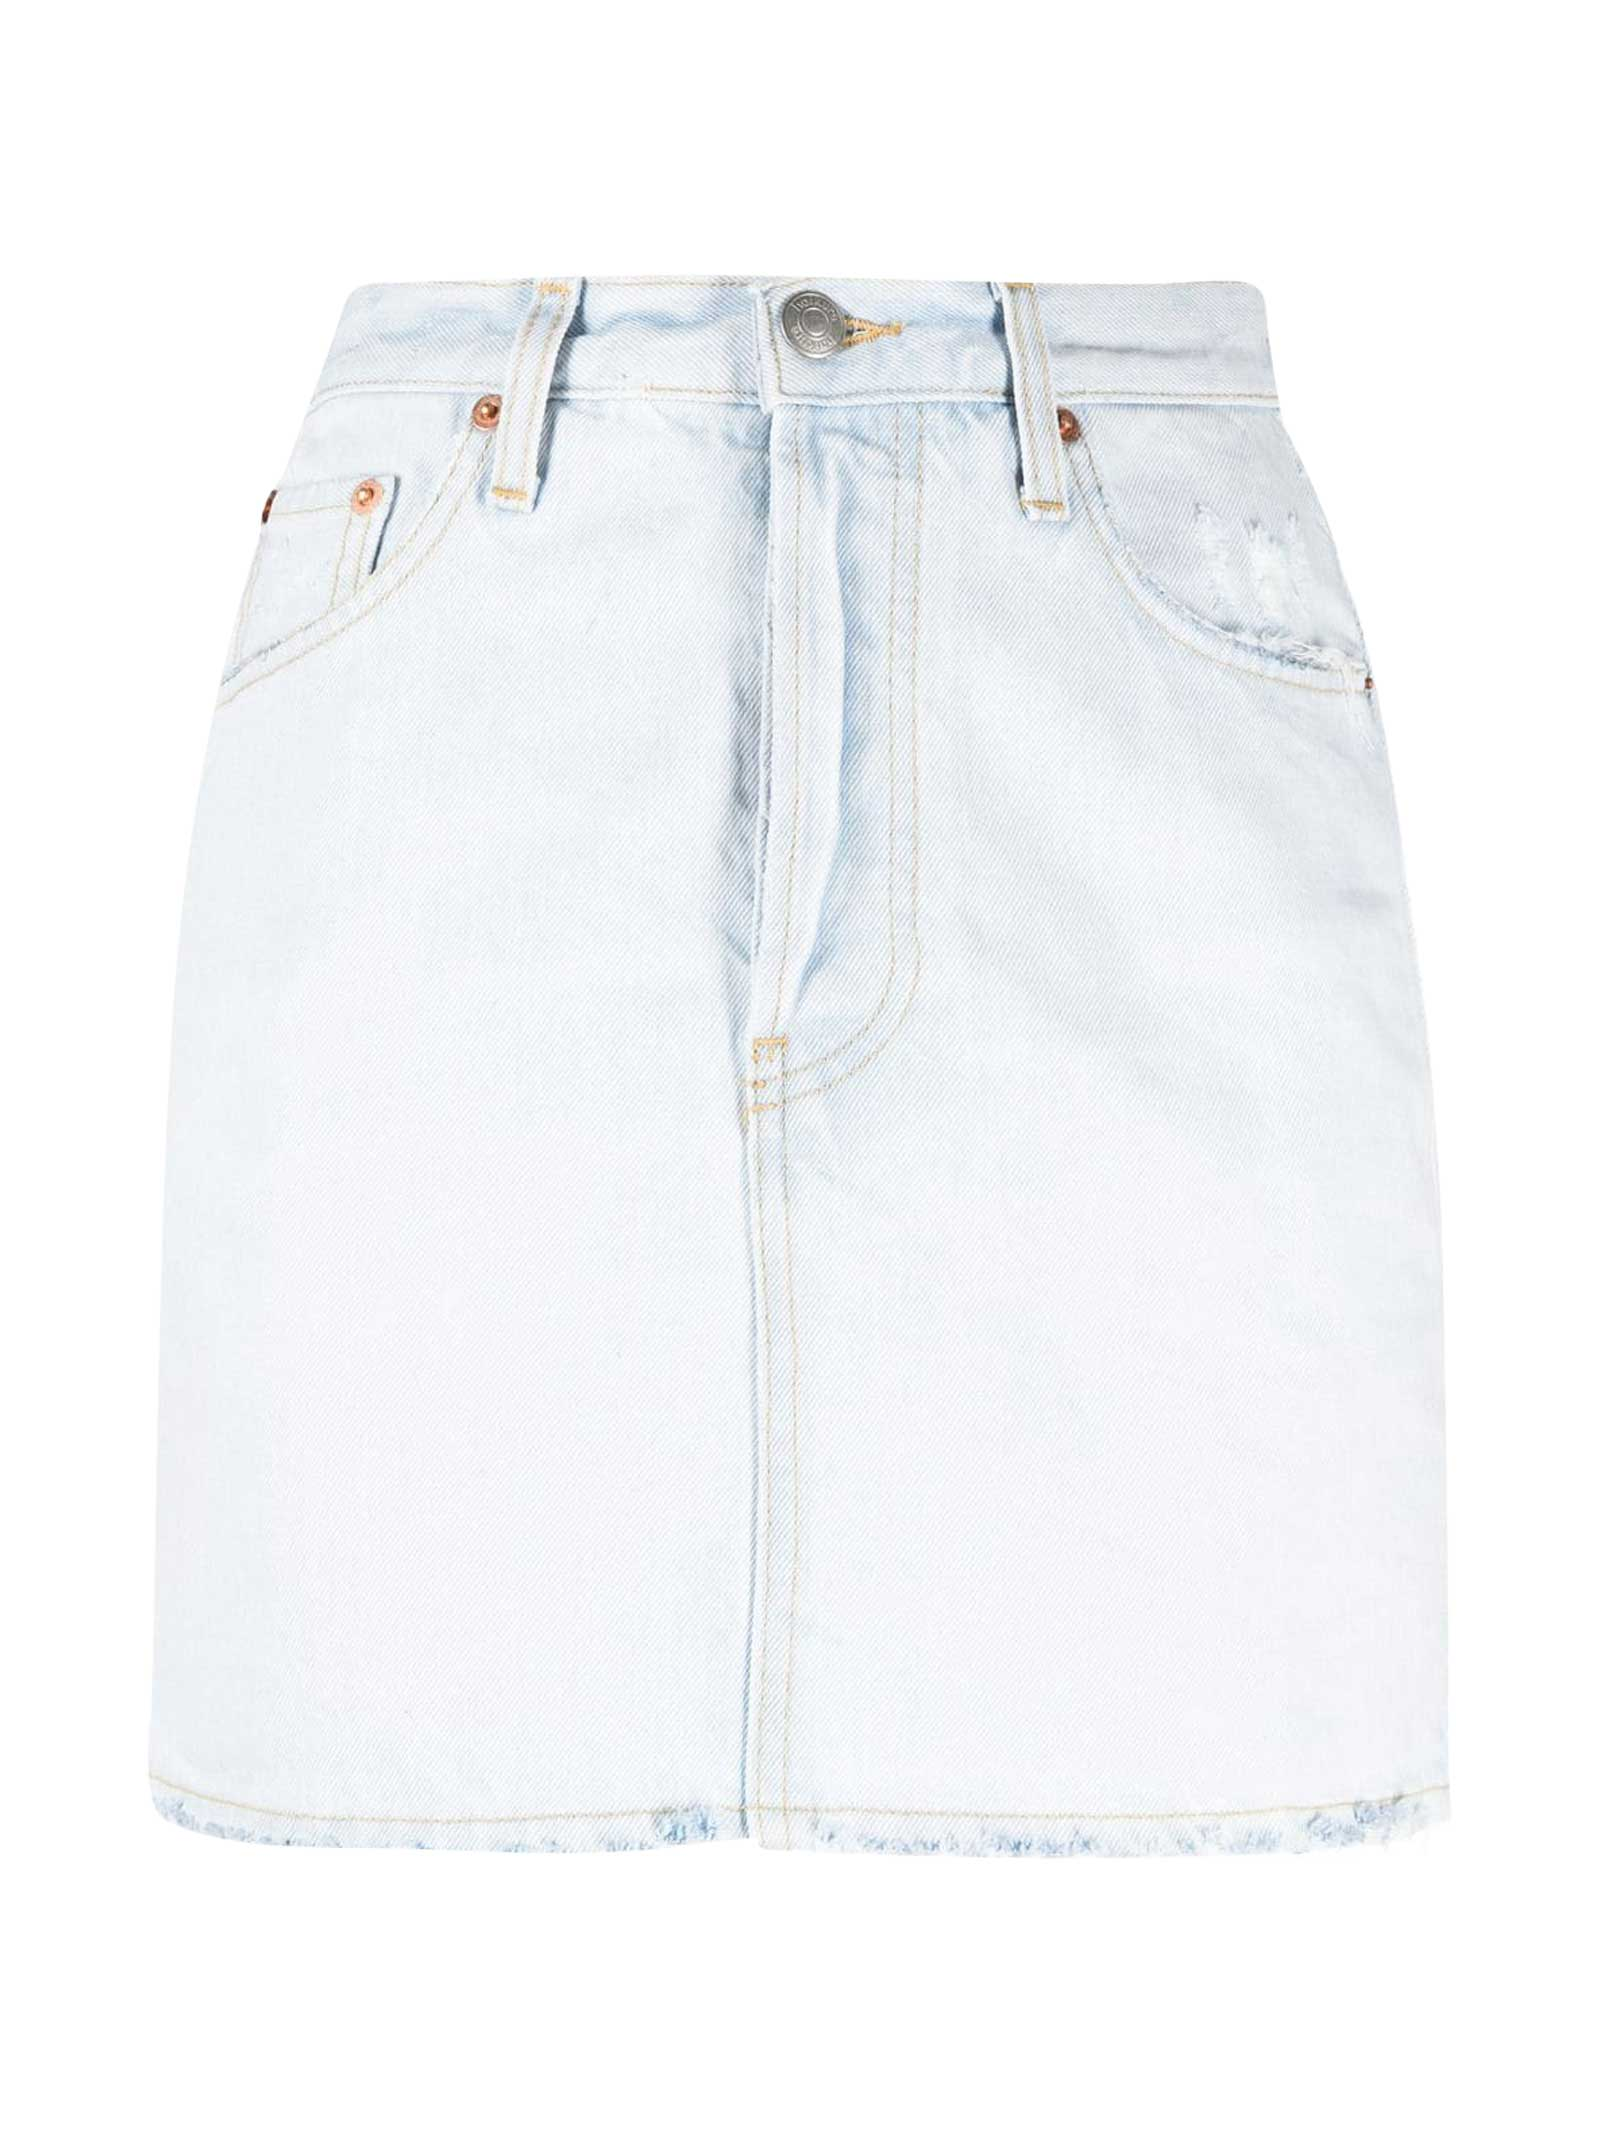 Haikure DENIM SKIRT GEORGIA MODEL